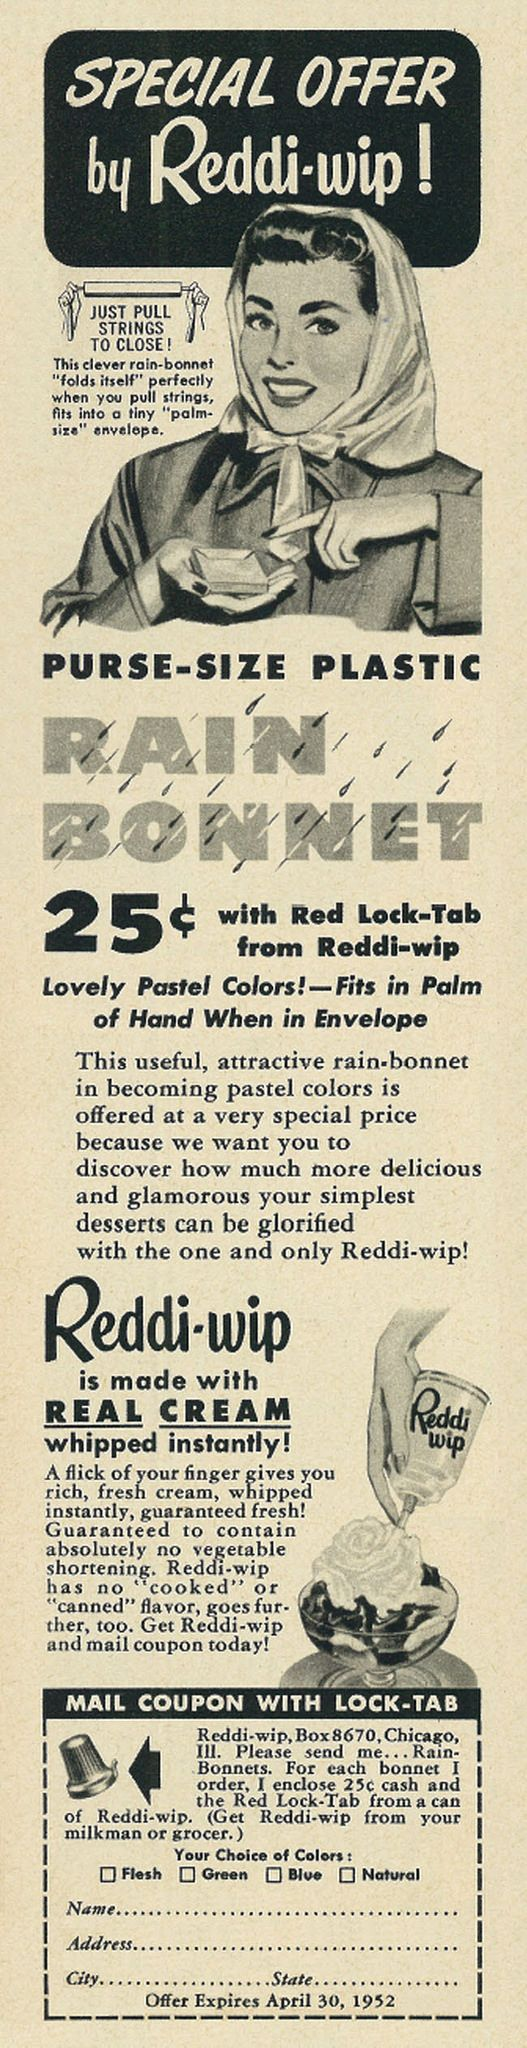 Illustrated 1952 Food Ad, Reddi-wip, with Plastic Purse-size Rain Bonnet Offer | Flickr - Photo Sharing!